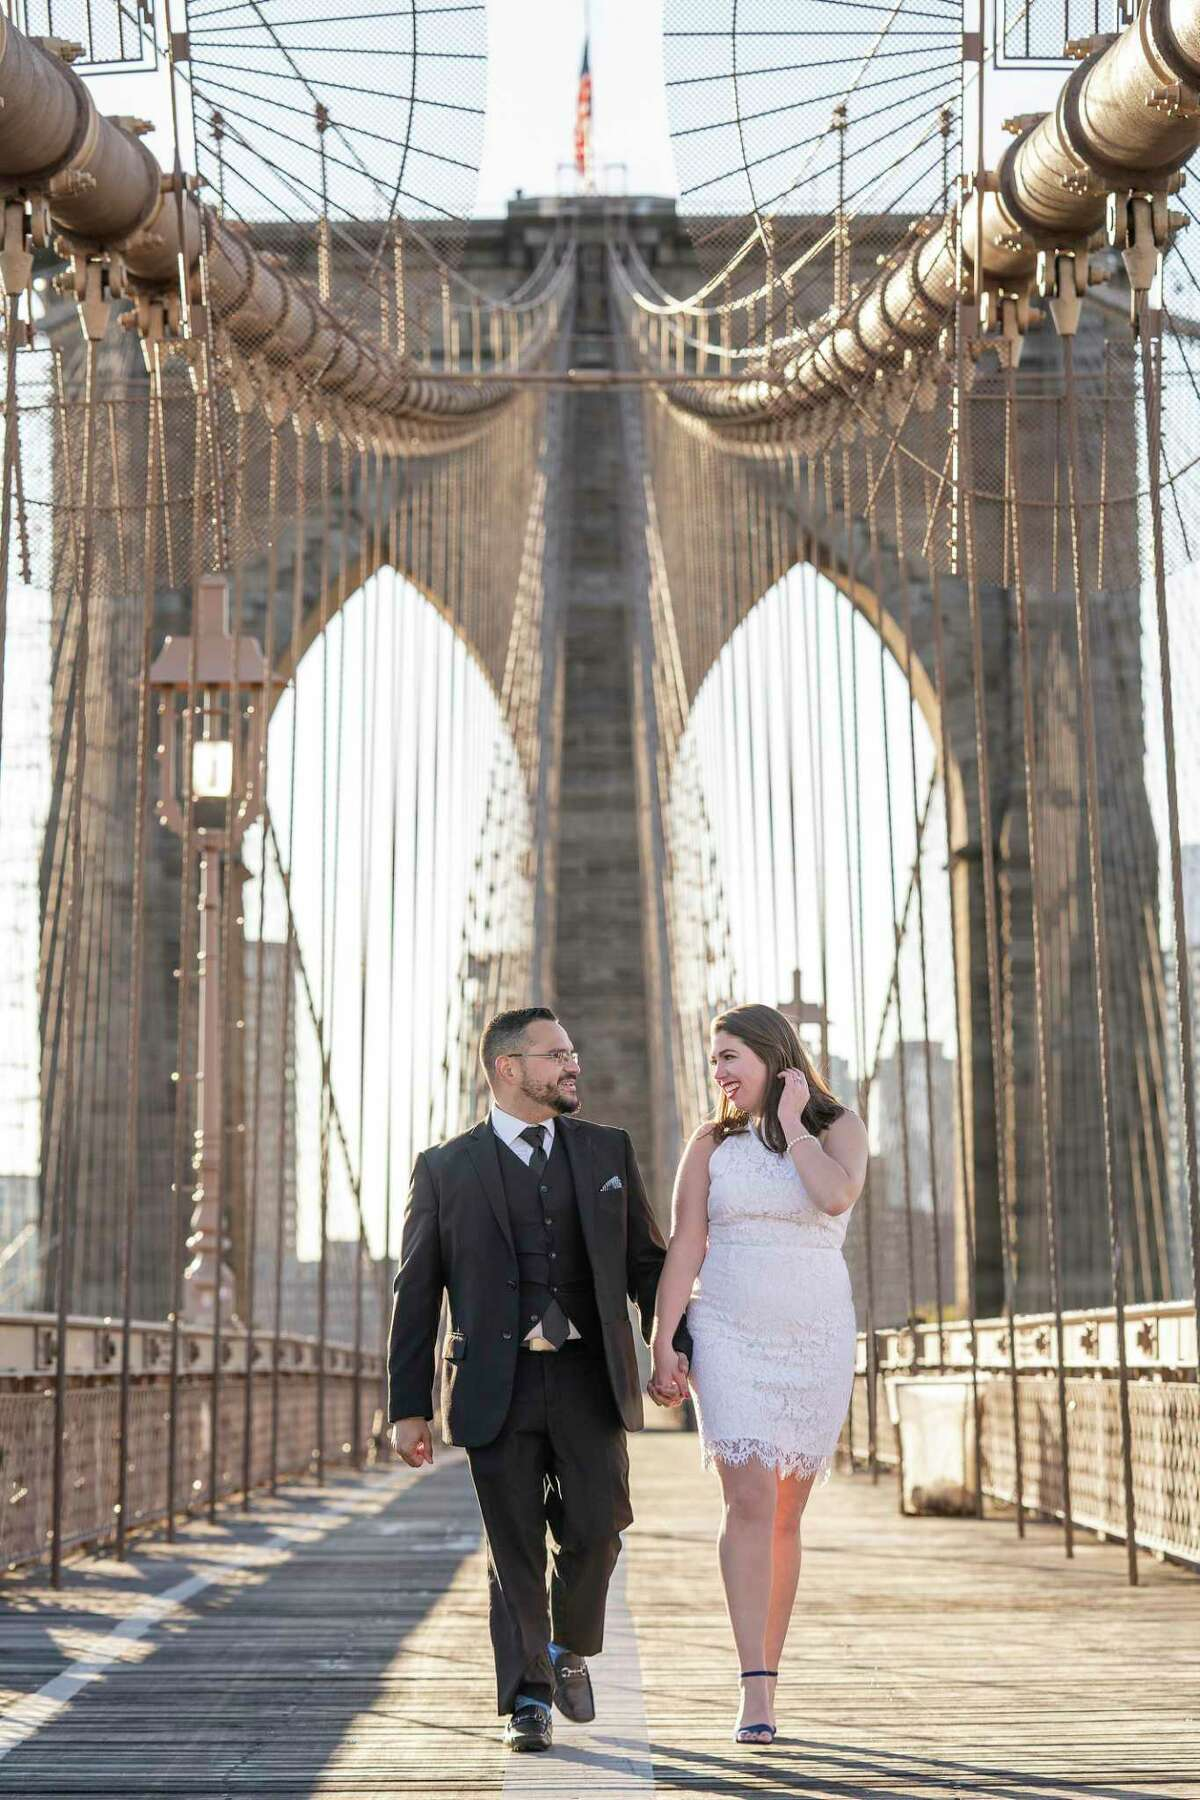 McKenna Crilley and her husband Frankie Morales have rescheduled their wedding reception three times during the COVID-19 pandemic. The couple is hopeful they'll be able to host the event, as planned, on their final date, scheduled for Dec. 17.